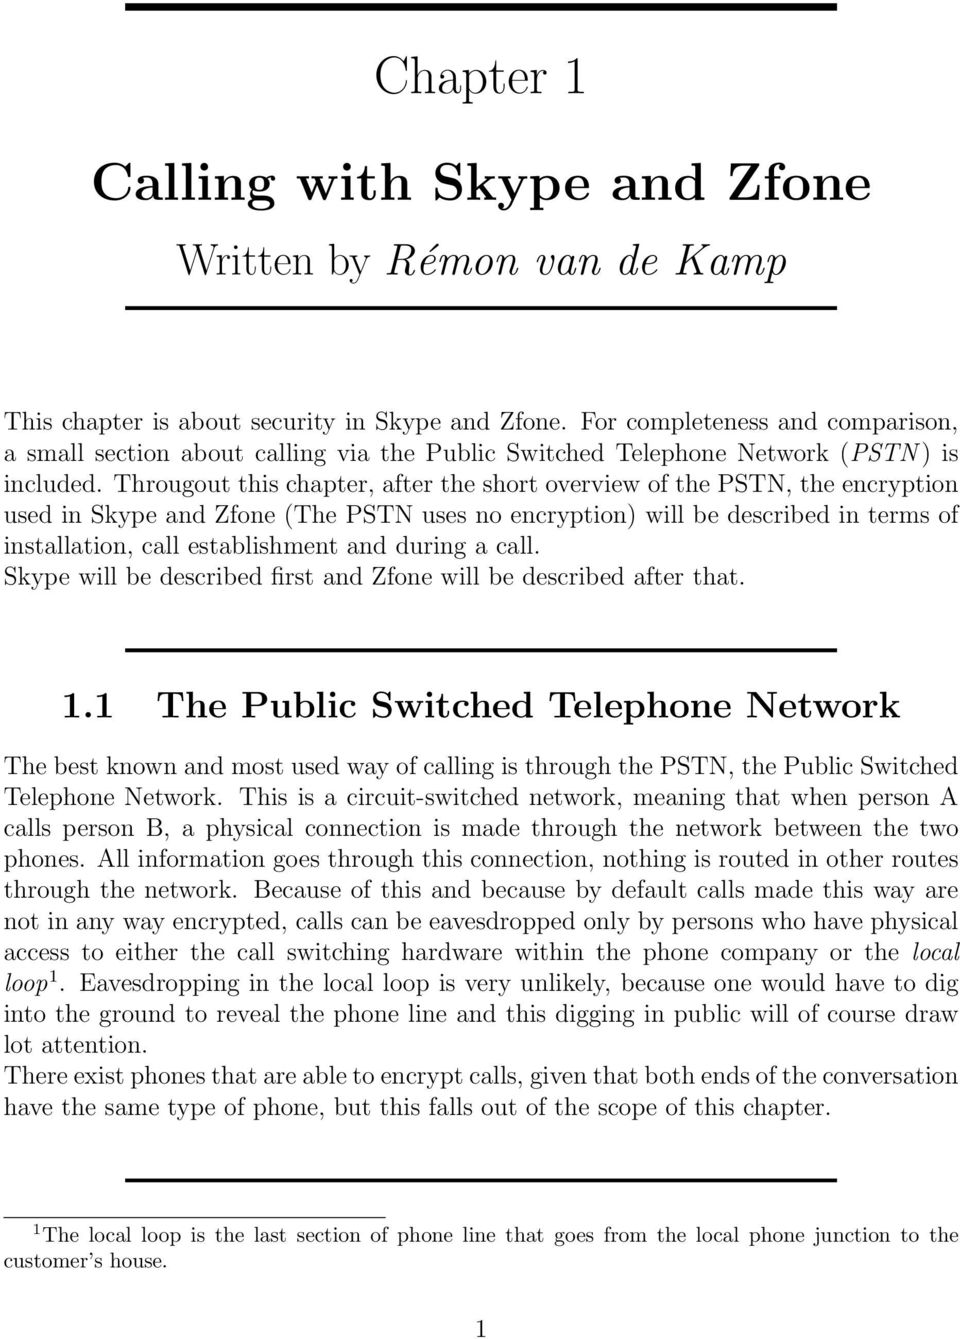 Througout this chapter, after the short overview of the PSTN, the encryption used in Skype and Zfone (The PSTN uses no encryption) will be described in terms of installation, call establishment and